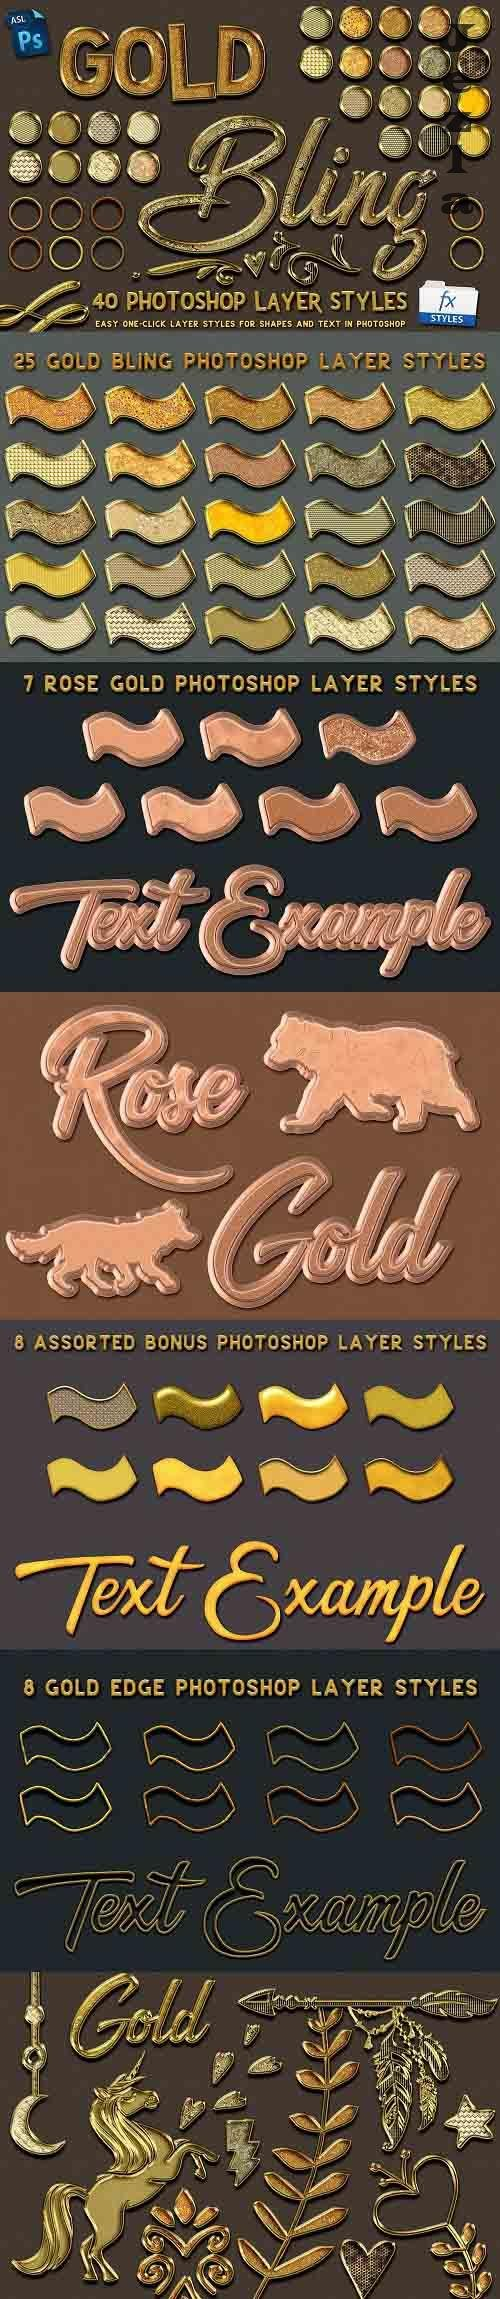 CreativeMarket - Gold Bling Photoshop Layer Styles 5115006